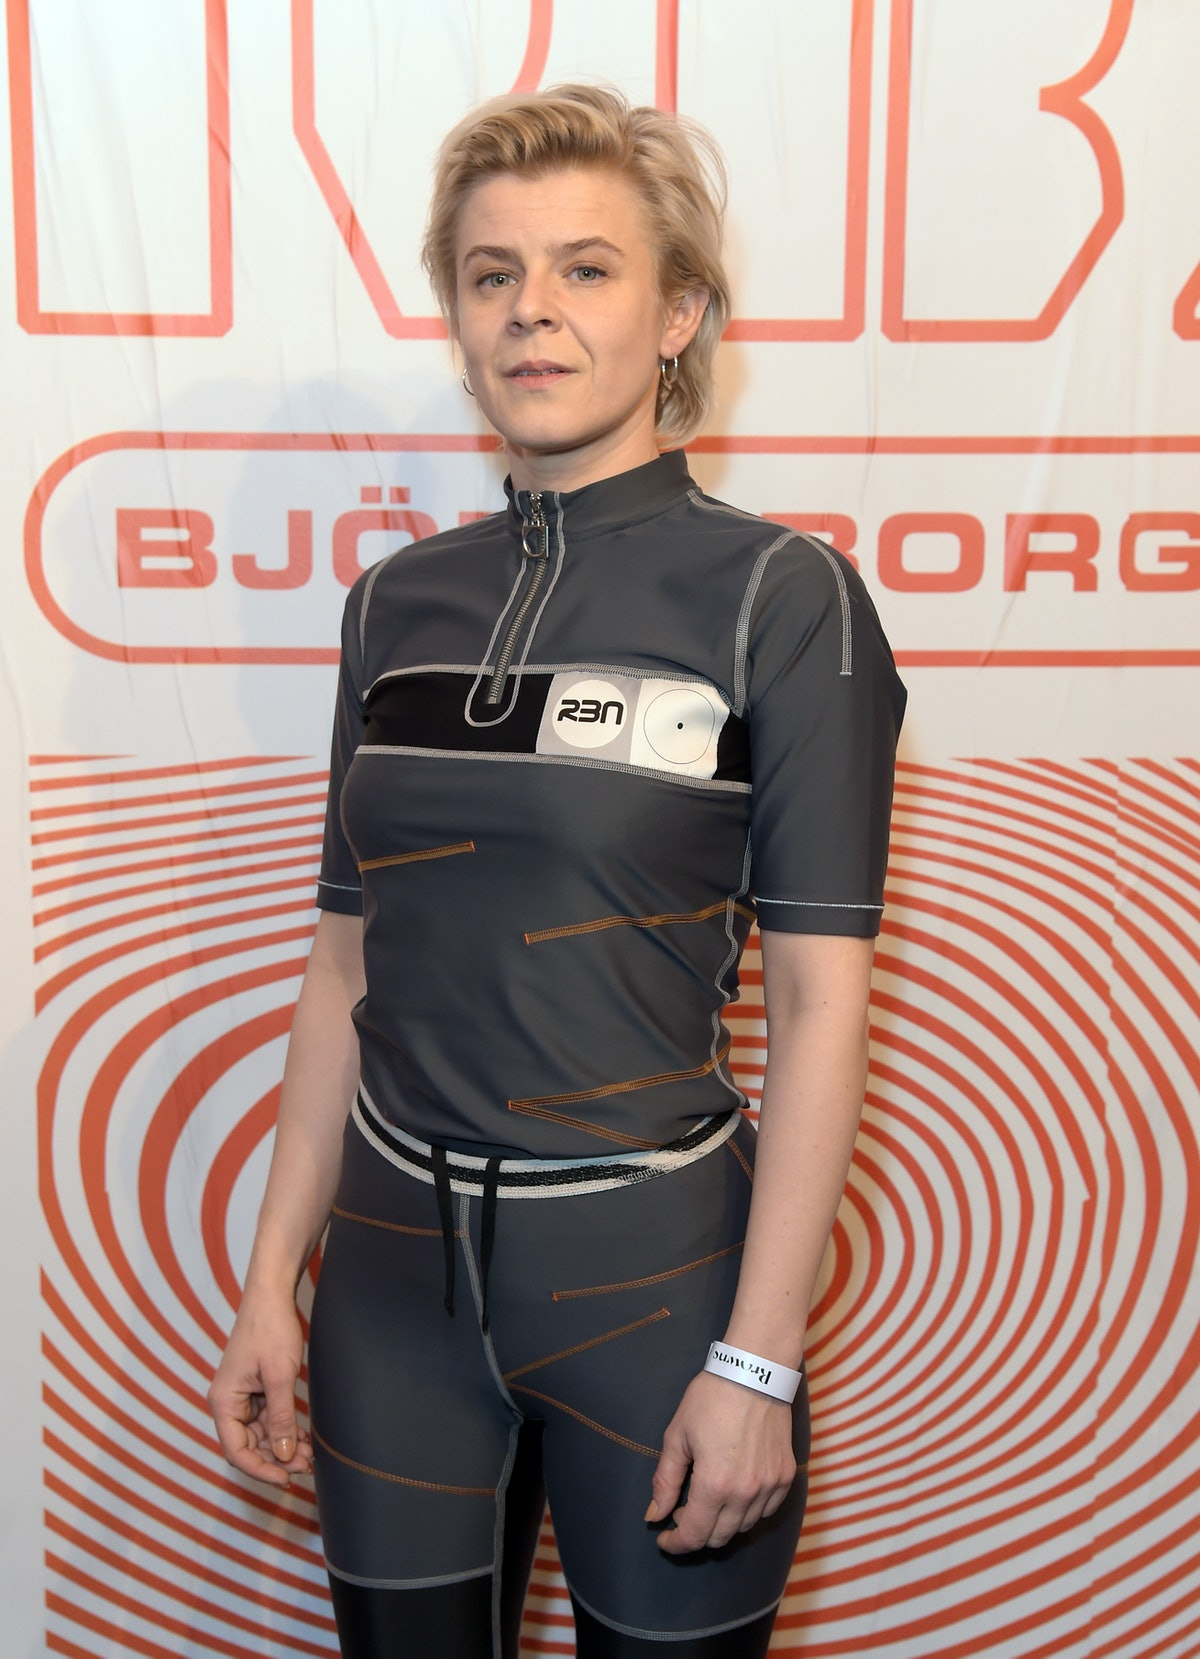 Browns Celebrates The Launch Bjorn Borg By Robyn During London Fashion Week